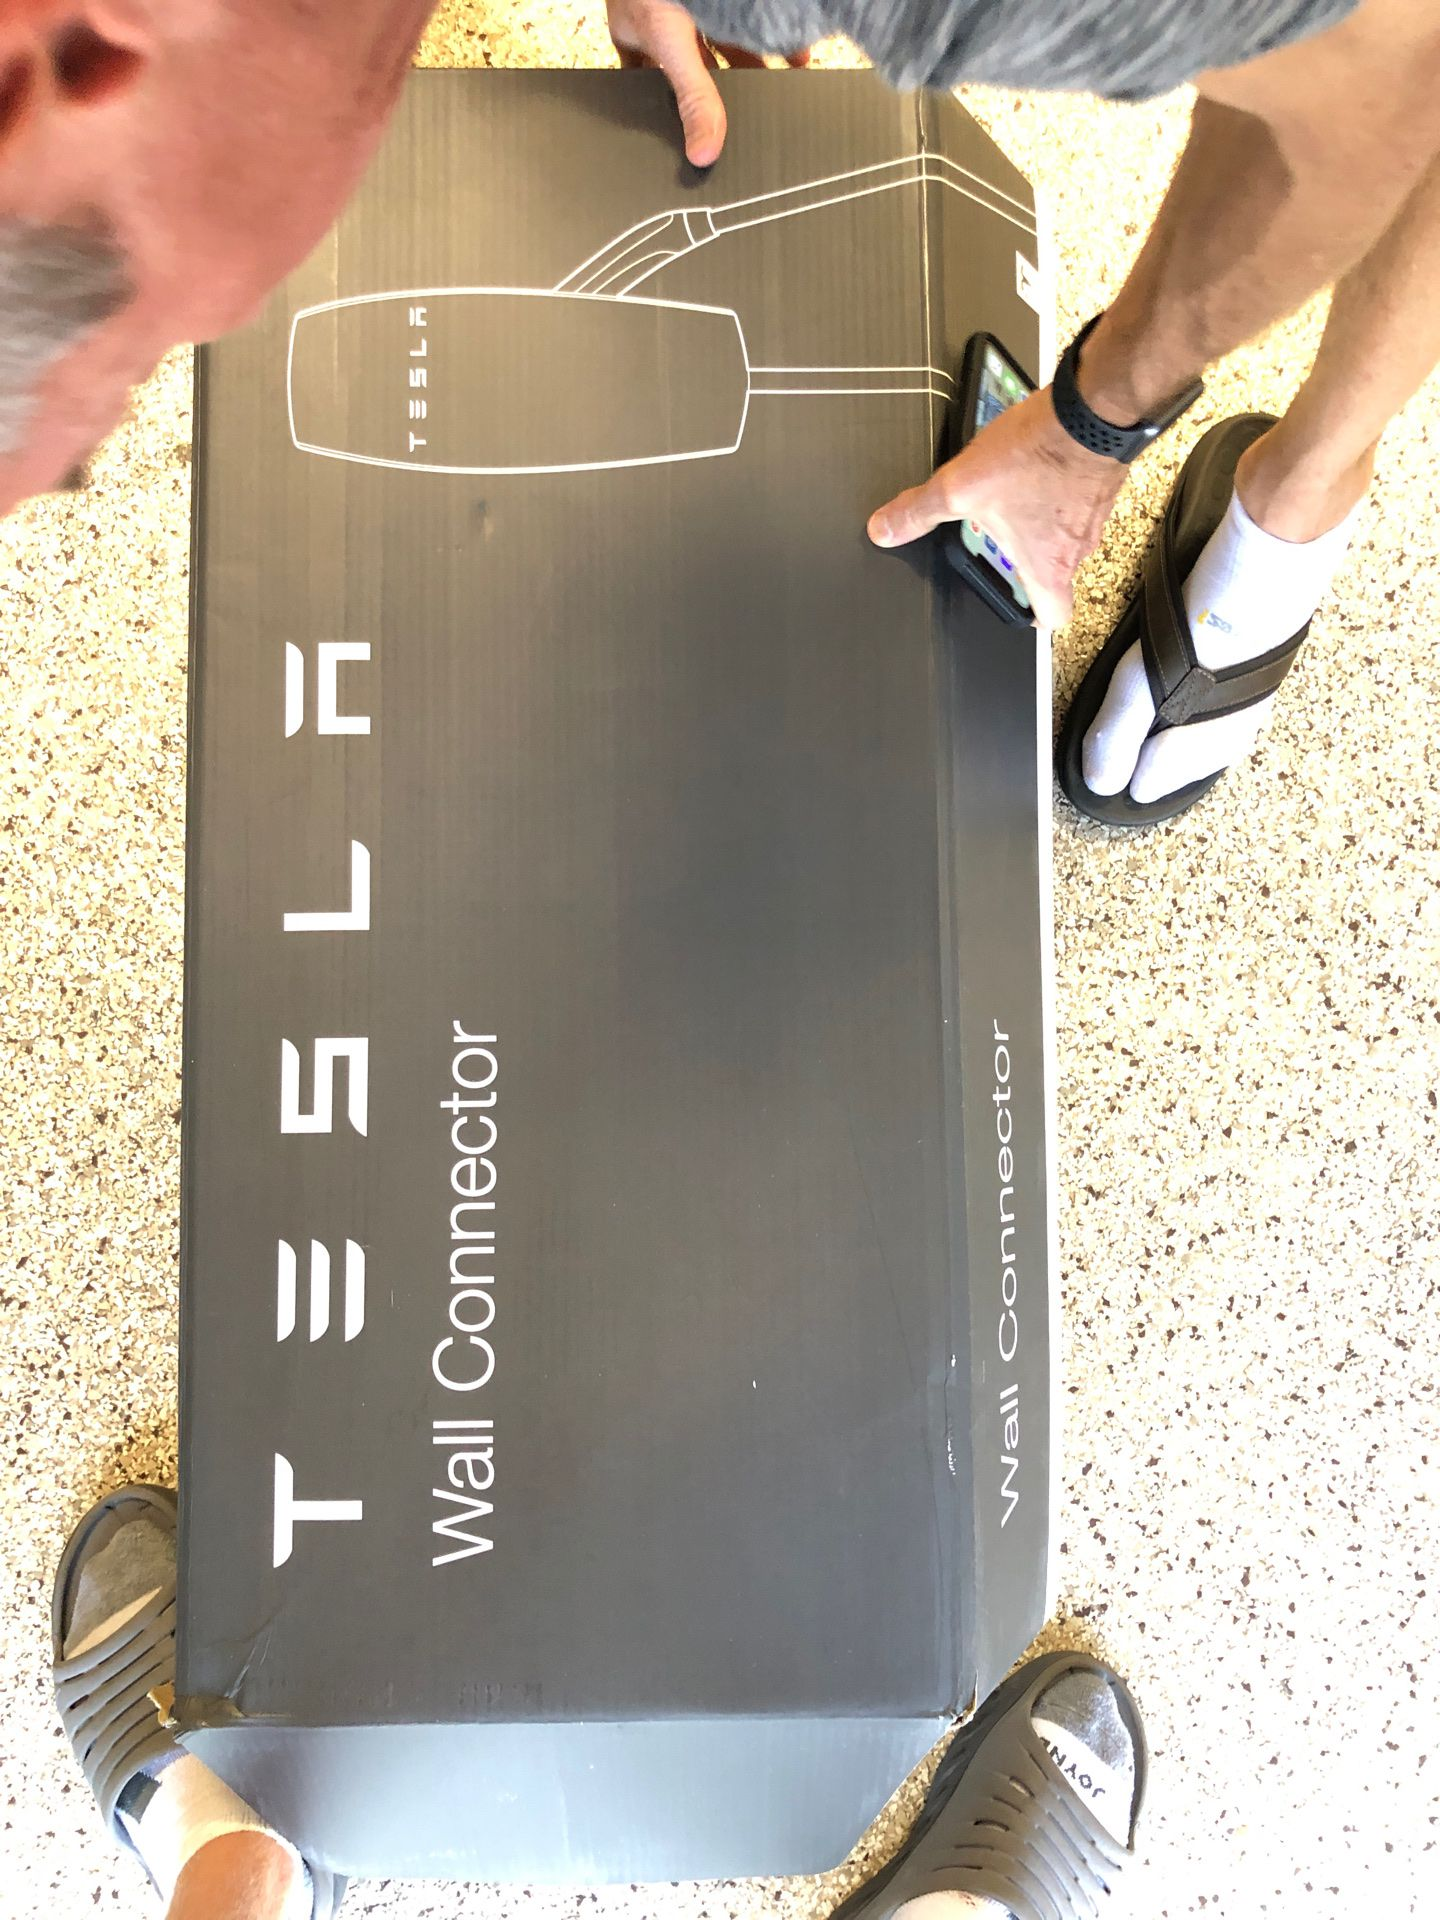 Tesla wall connector charger